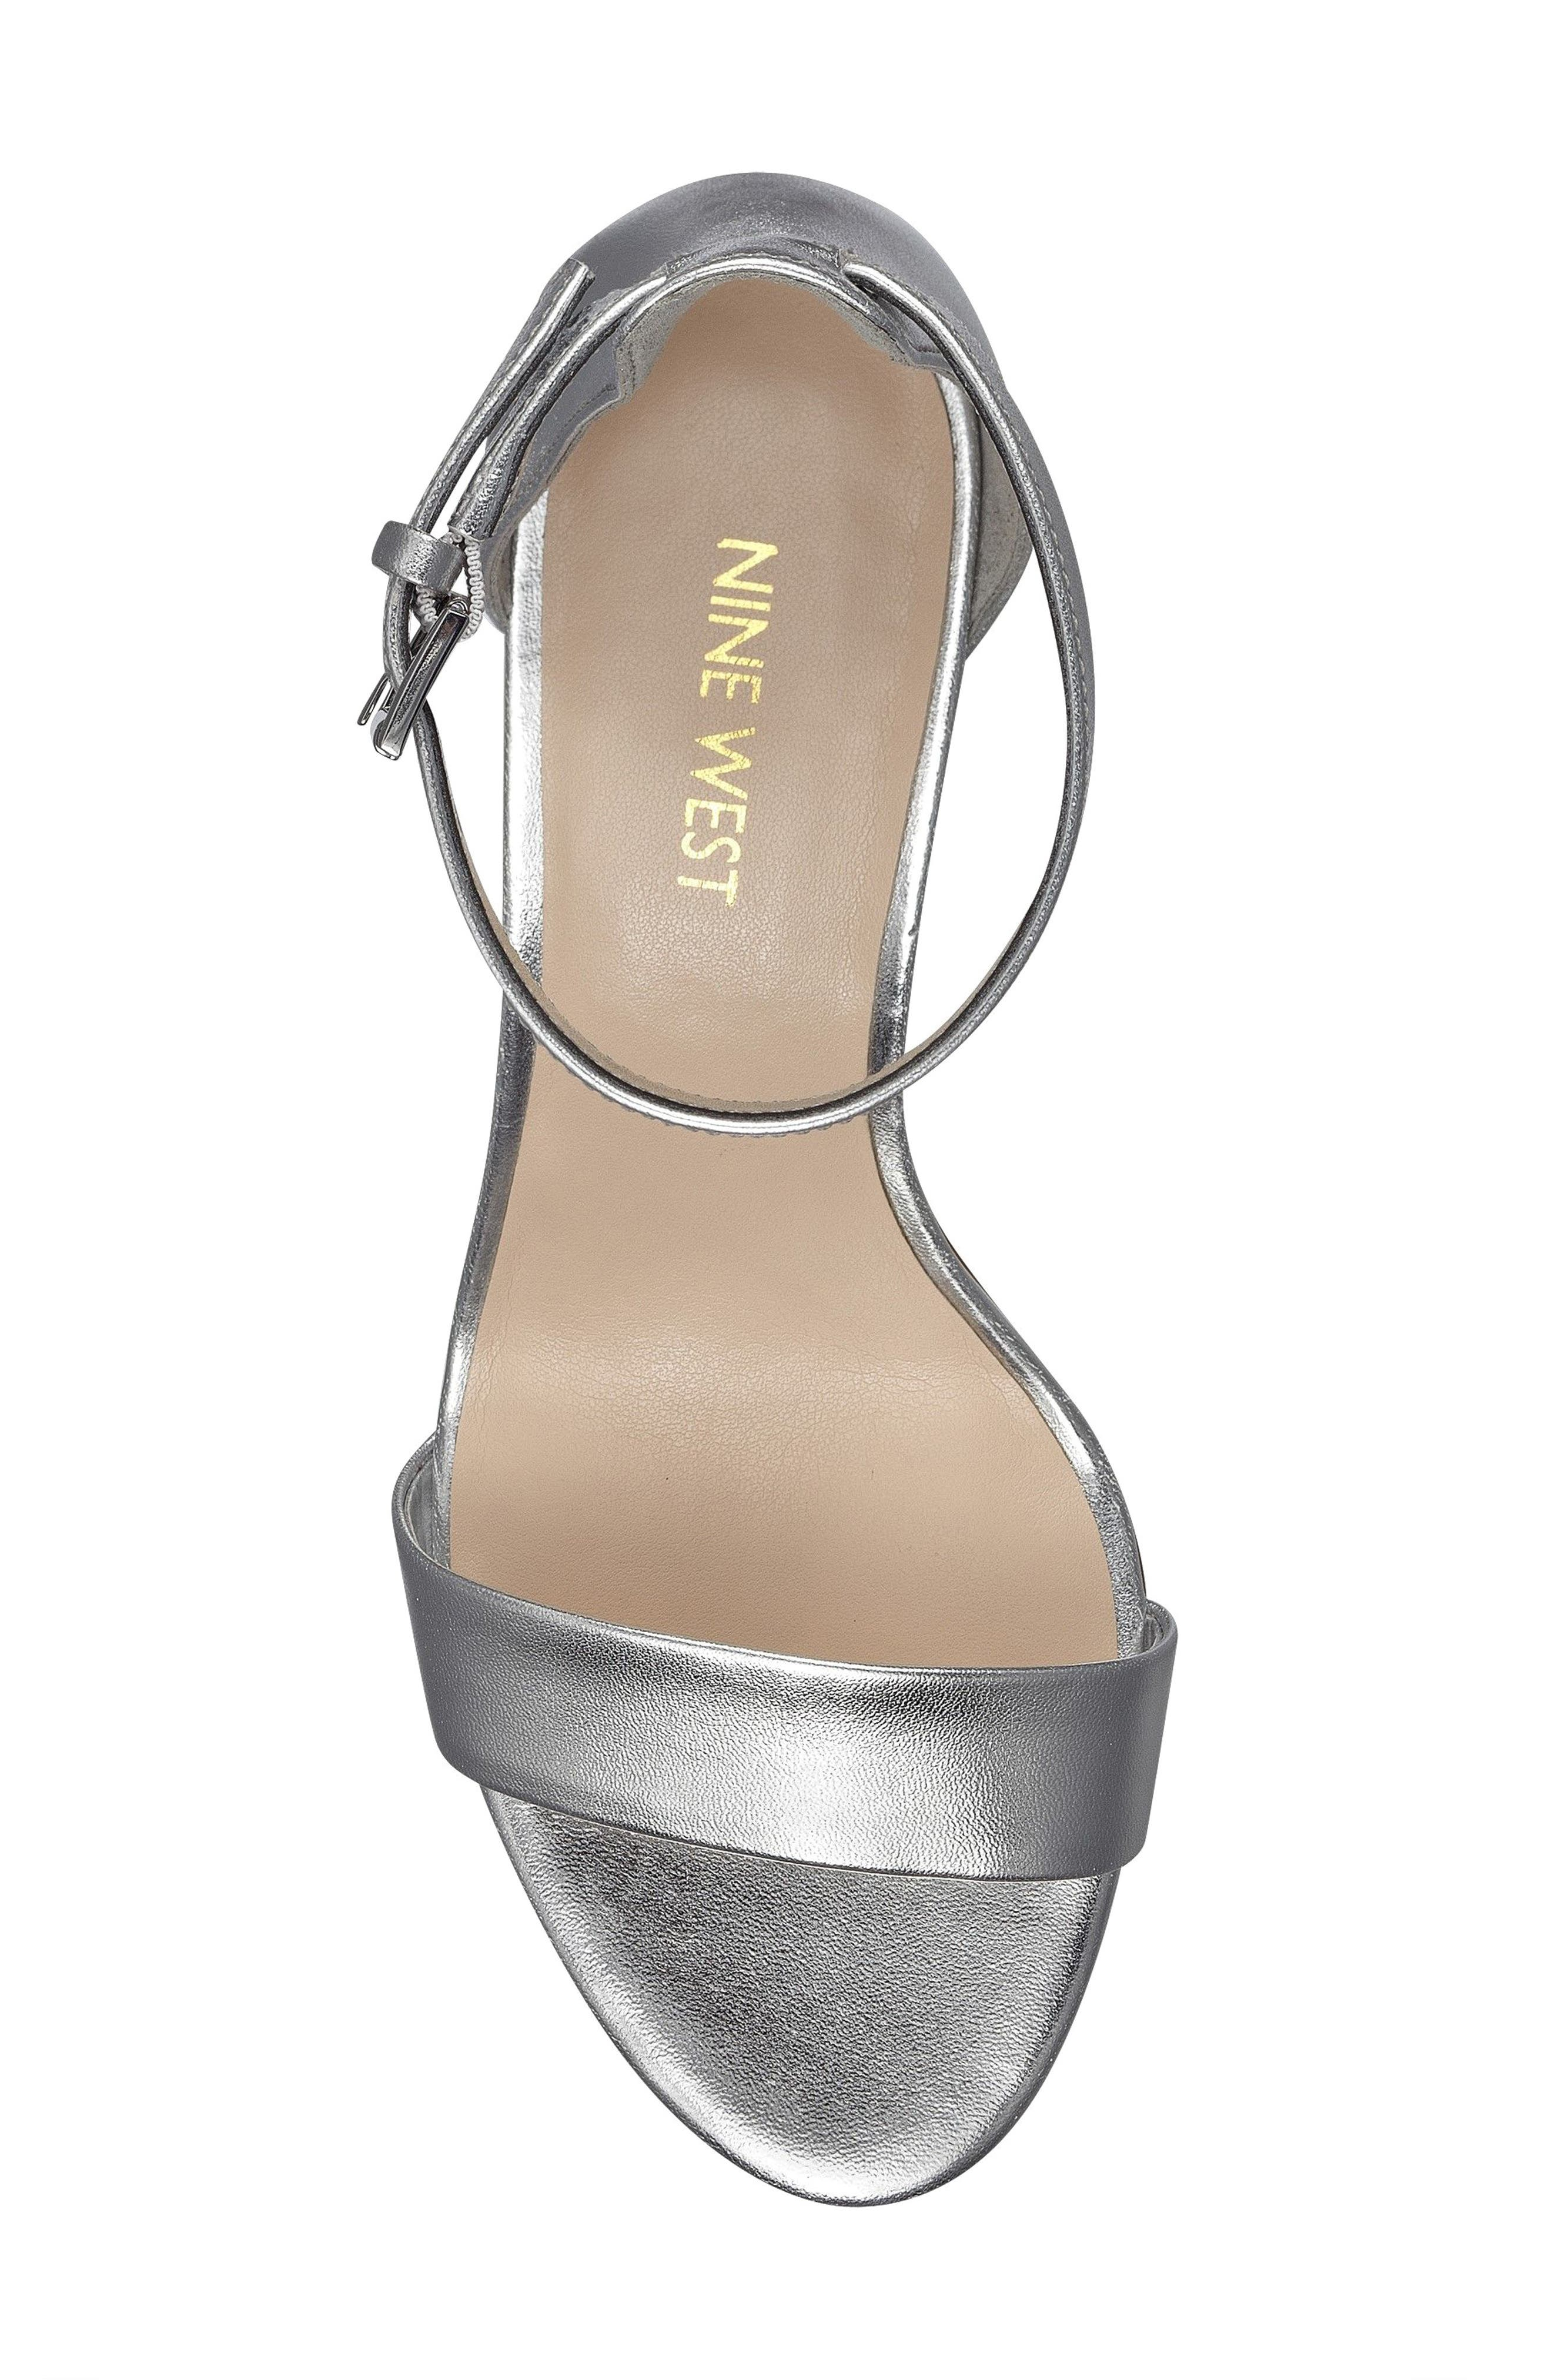 Pruce Ankle Strap Sandal,                             Alternate thumbnail 4, color,                             Silver Fabric